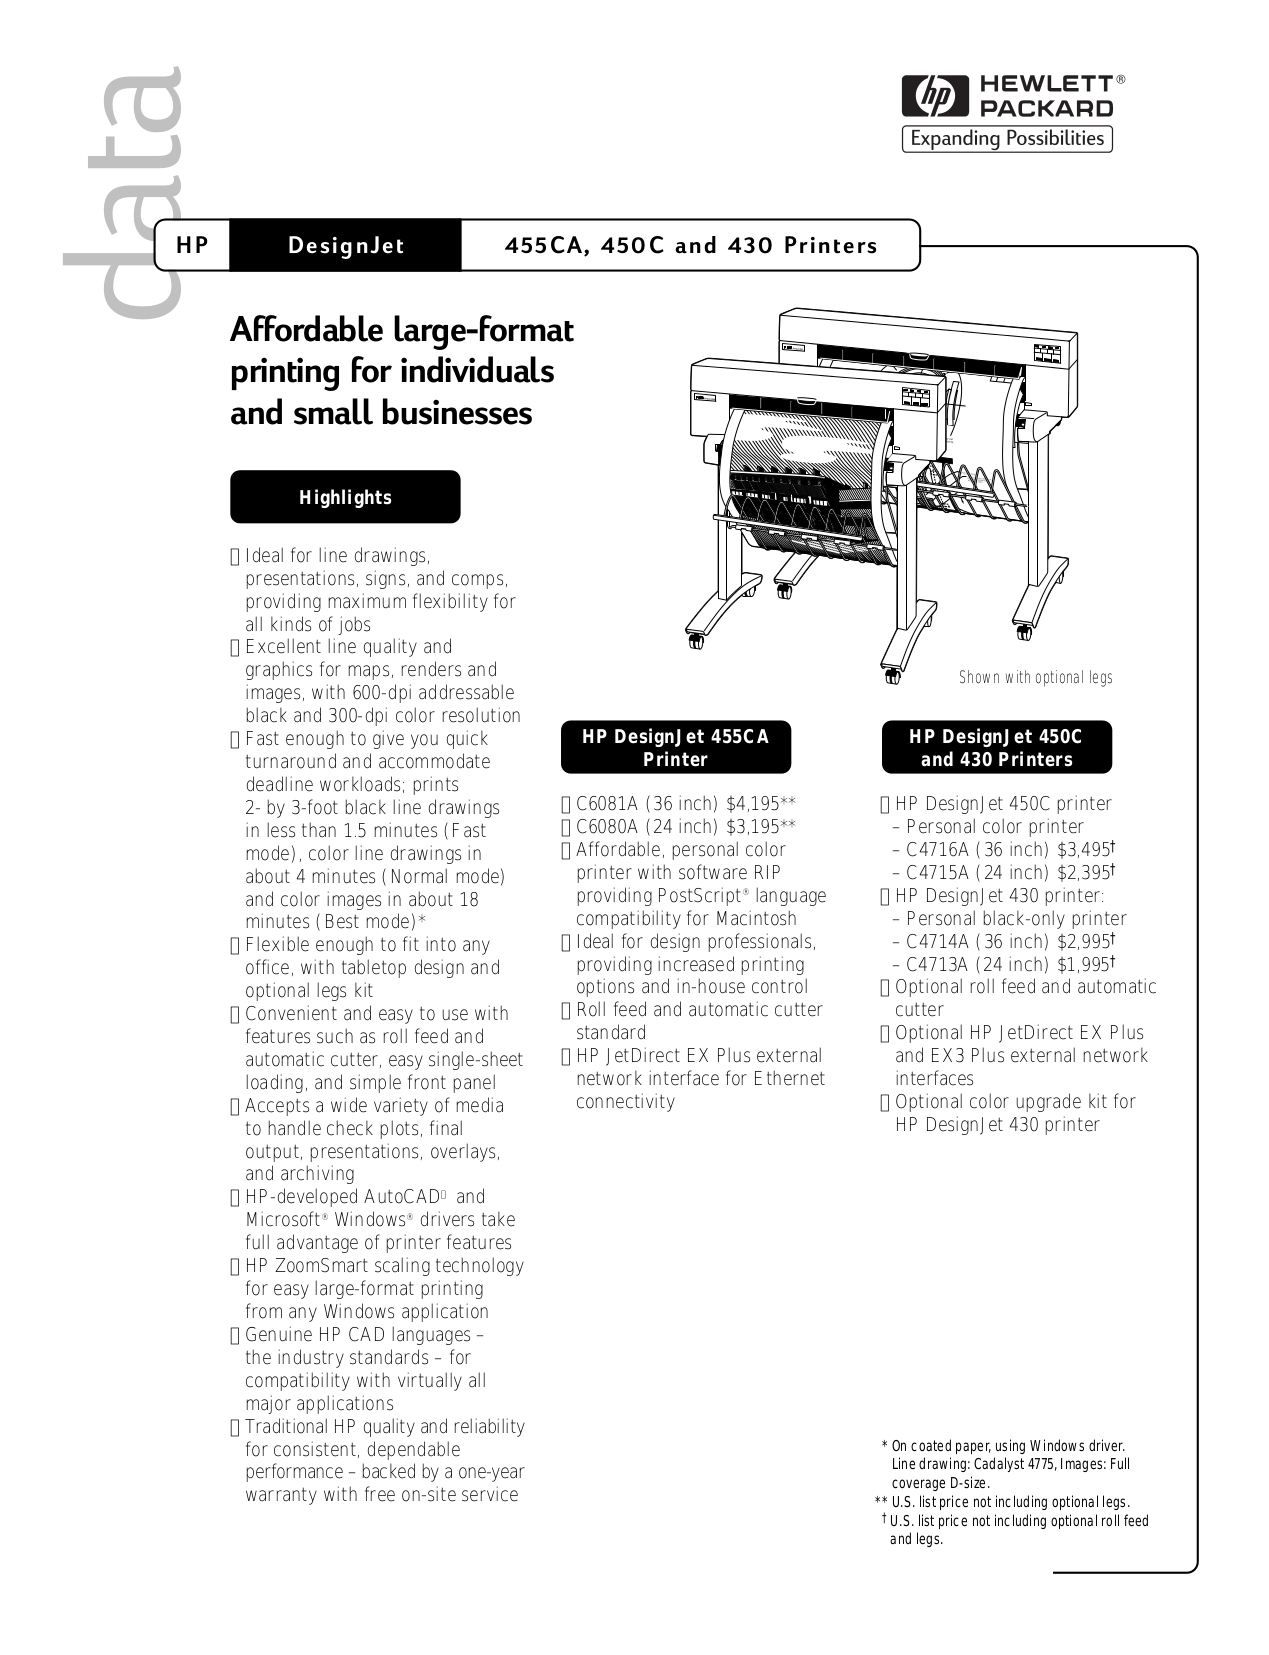 Download free pdf for HP Designjet 450c Printer manual